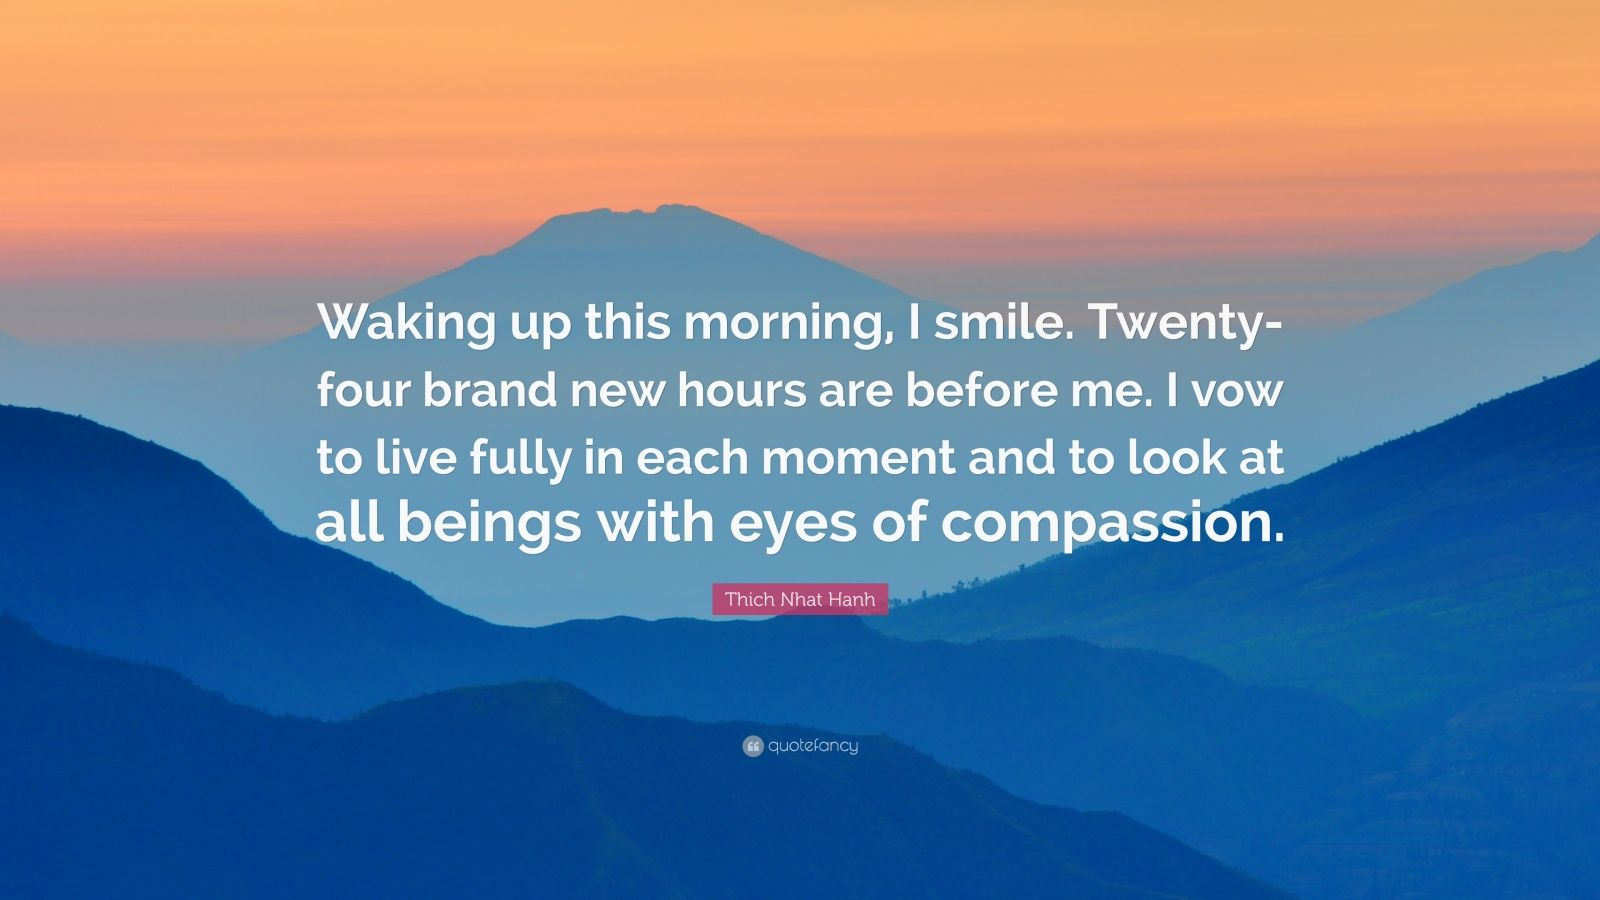 """Thich Nhat Hanh Quote: """"Waking up this morning, I smile. Twenty-four brand new hours are before me. I vow to live fully in each moment and to look at all beings with eyes of compassion."""""""